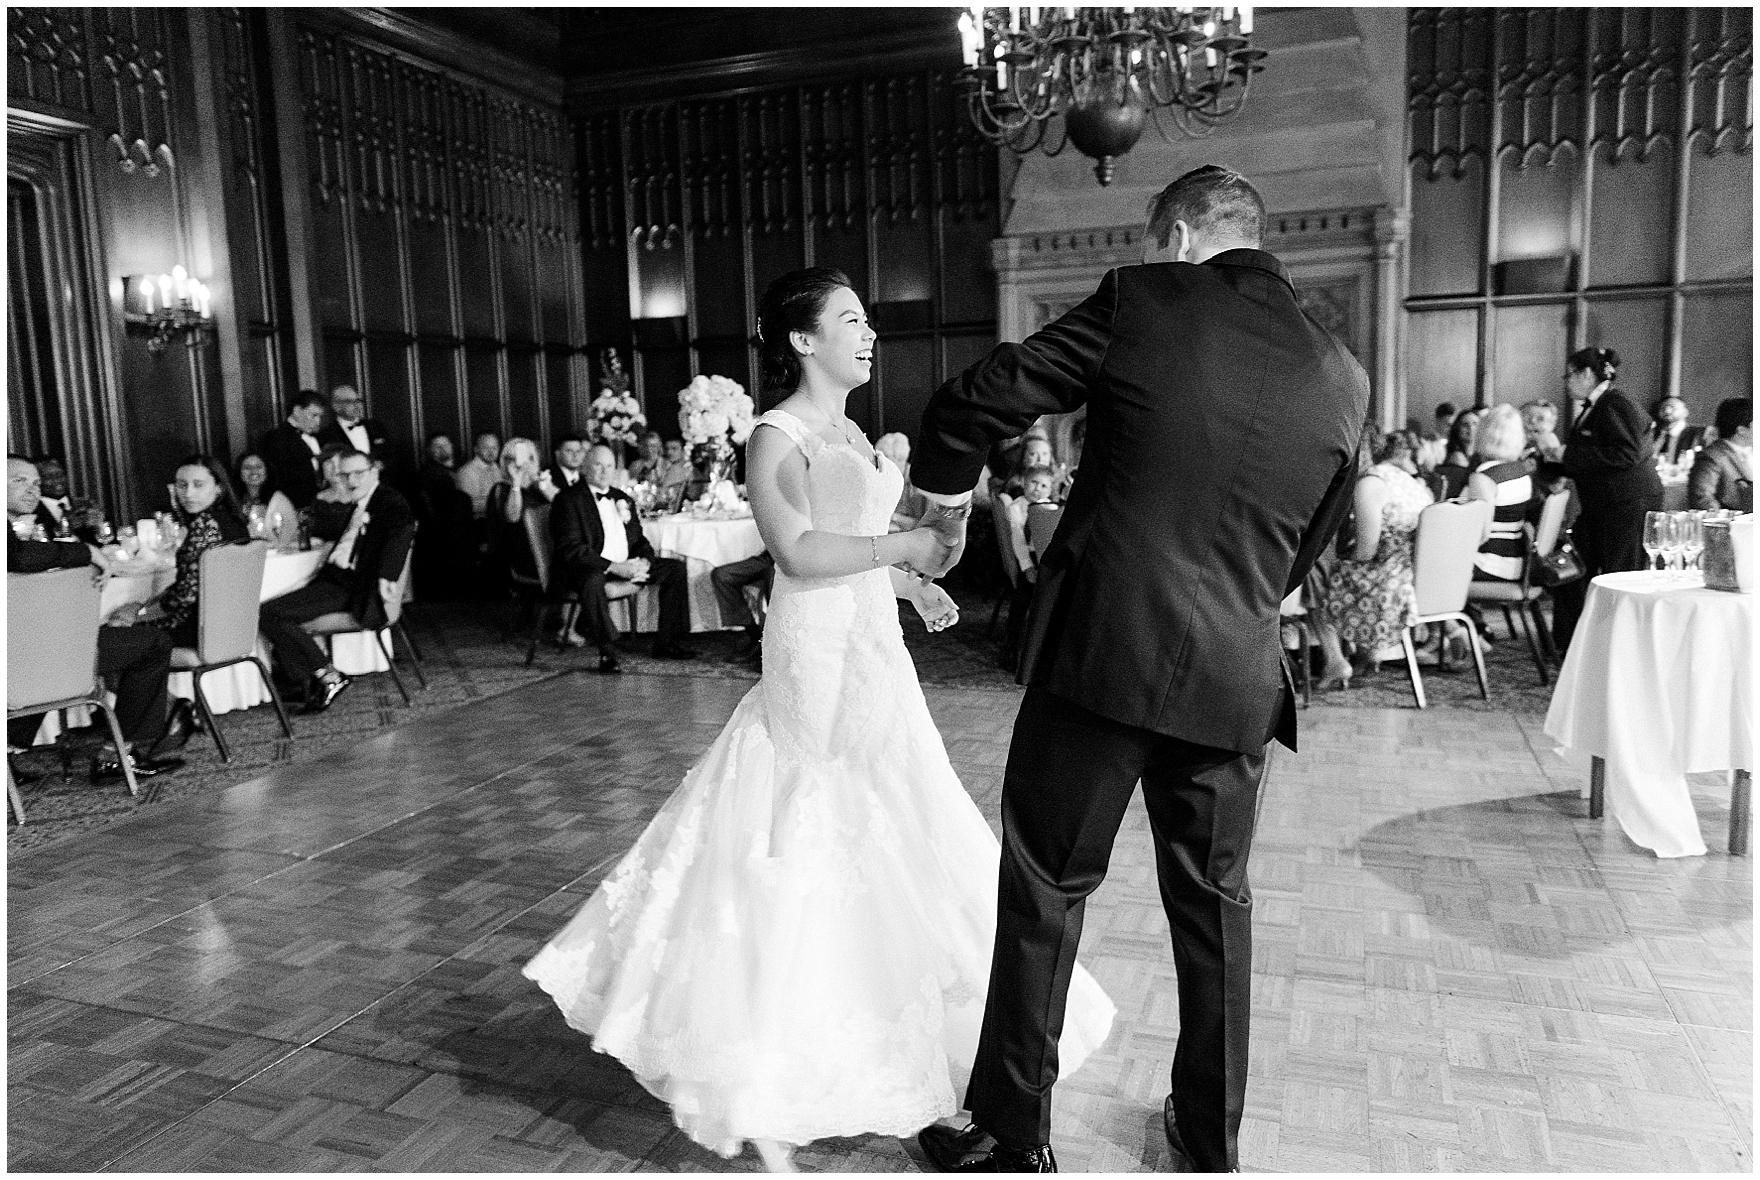 A bride and groom share their first dance in the Michigan Room set up for a dinner reception for a University Club of Chicago wedding.